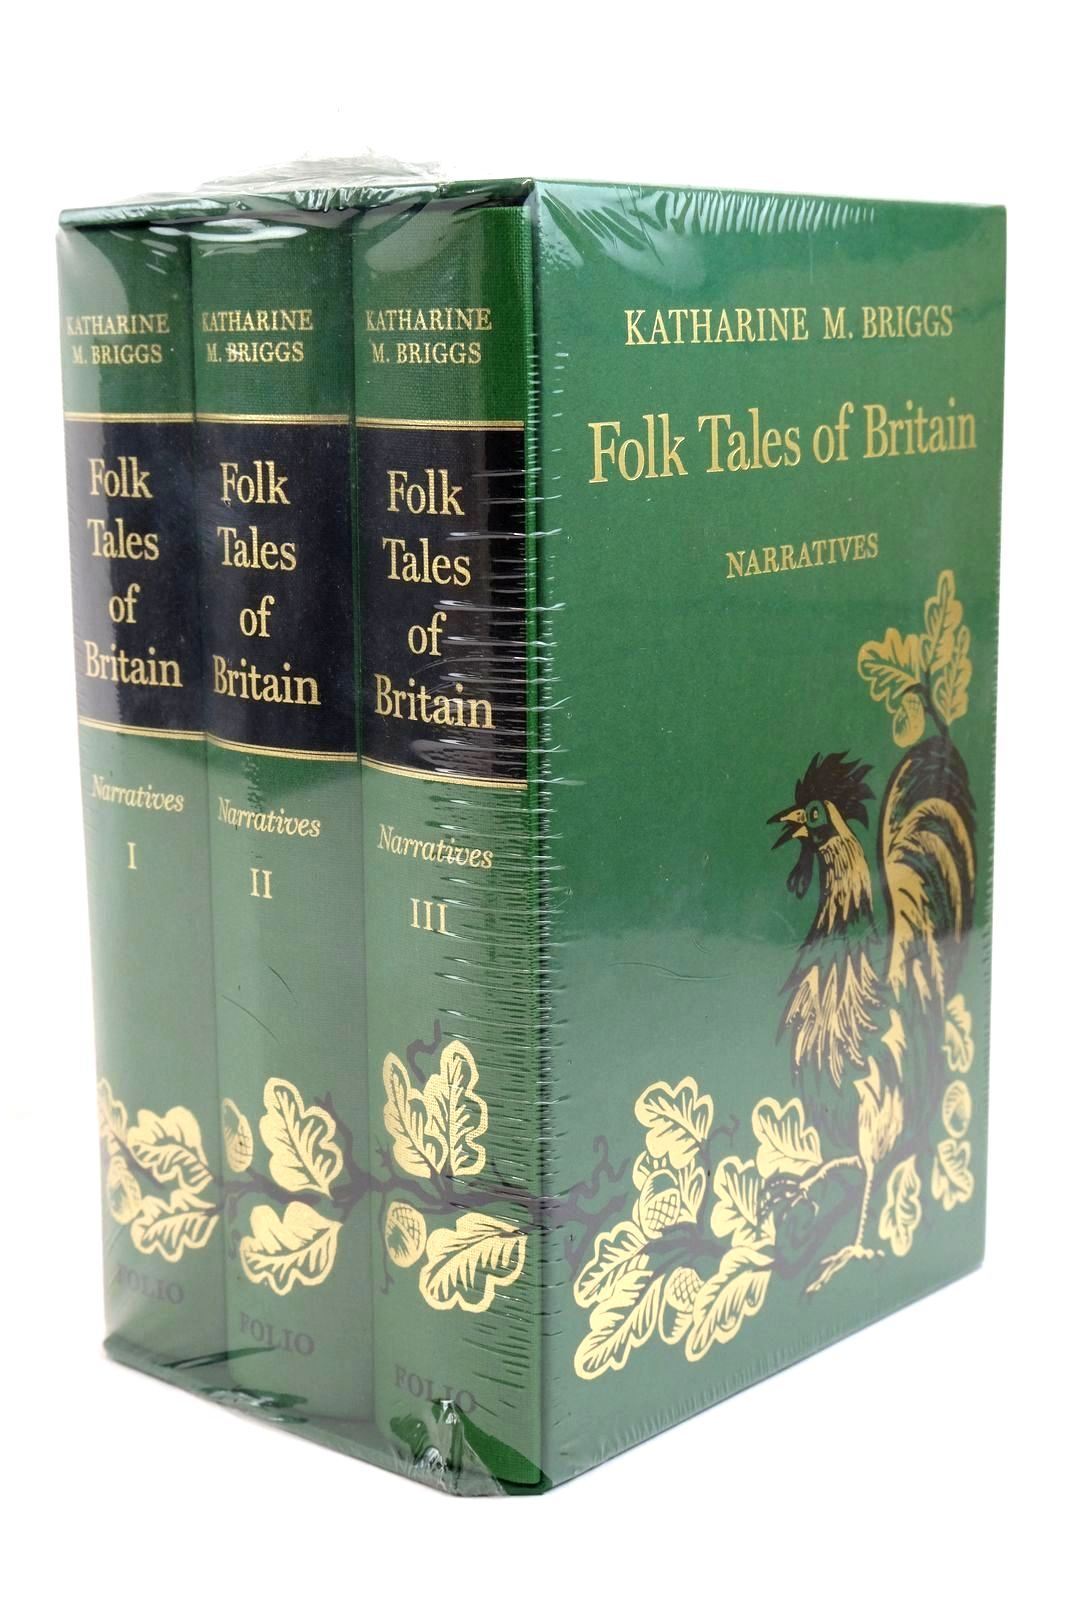 Photo of FOLK TALES OF BRITAIN NARRATIVES (3 VOLUMES)- Stock Number: 1321716